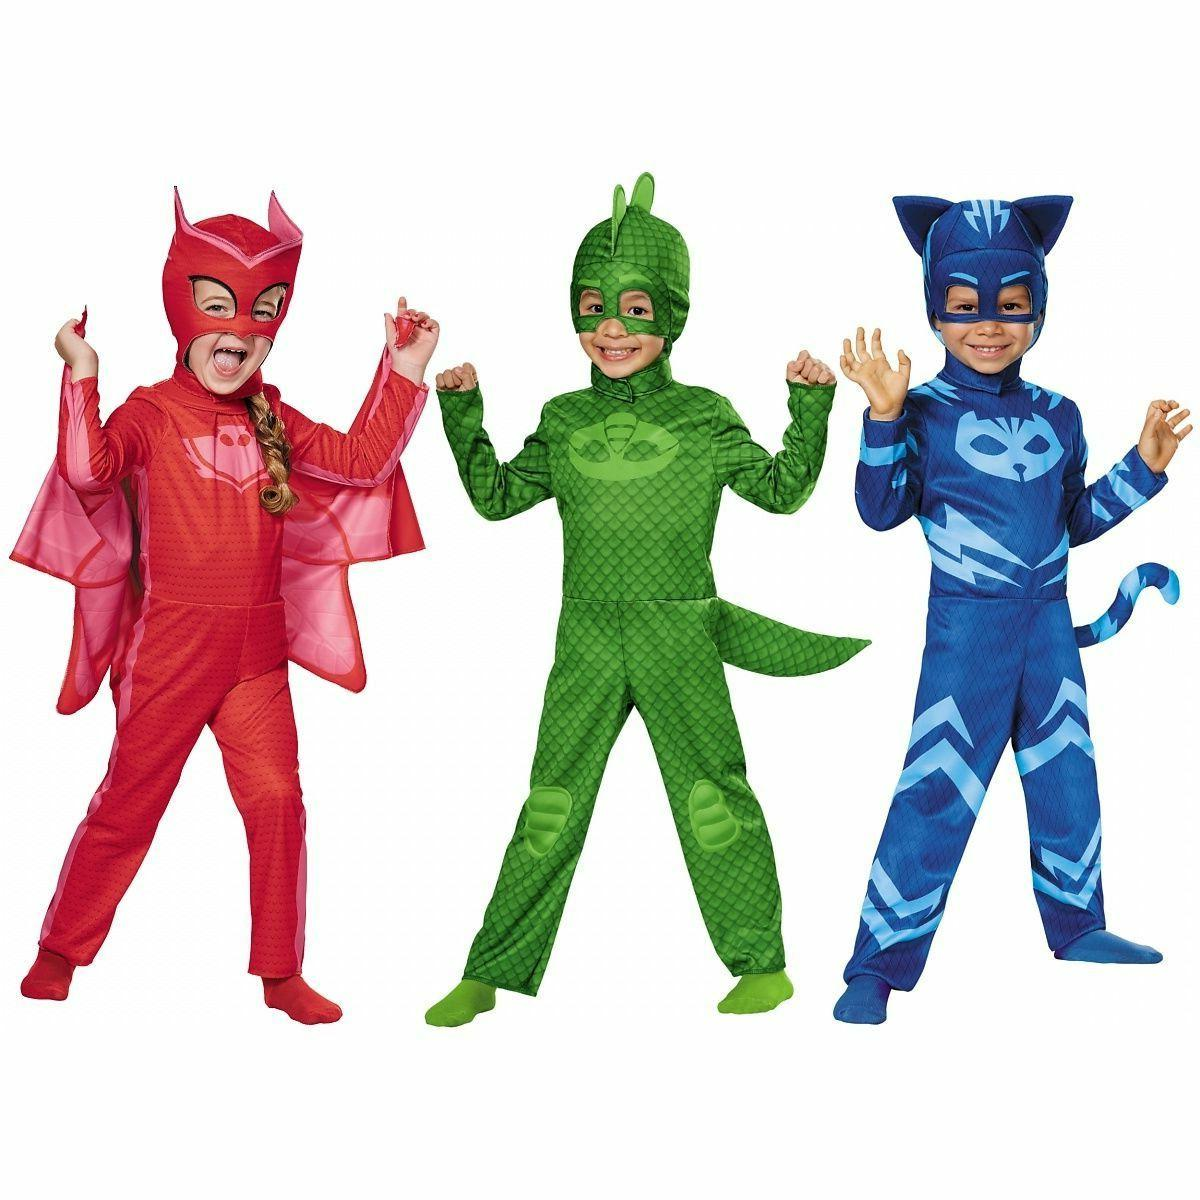 Disguise PJ Masks Catboy Gekko Owlette Classic Kids Toddler